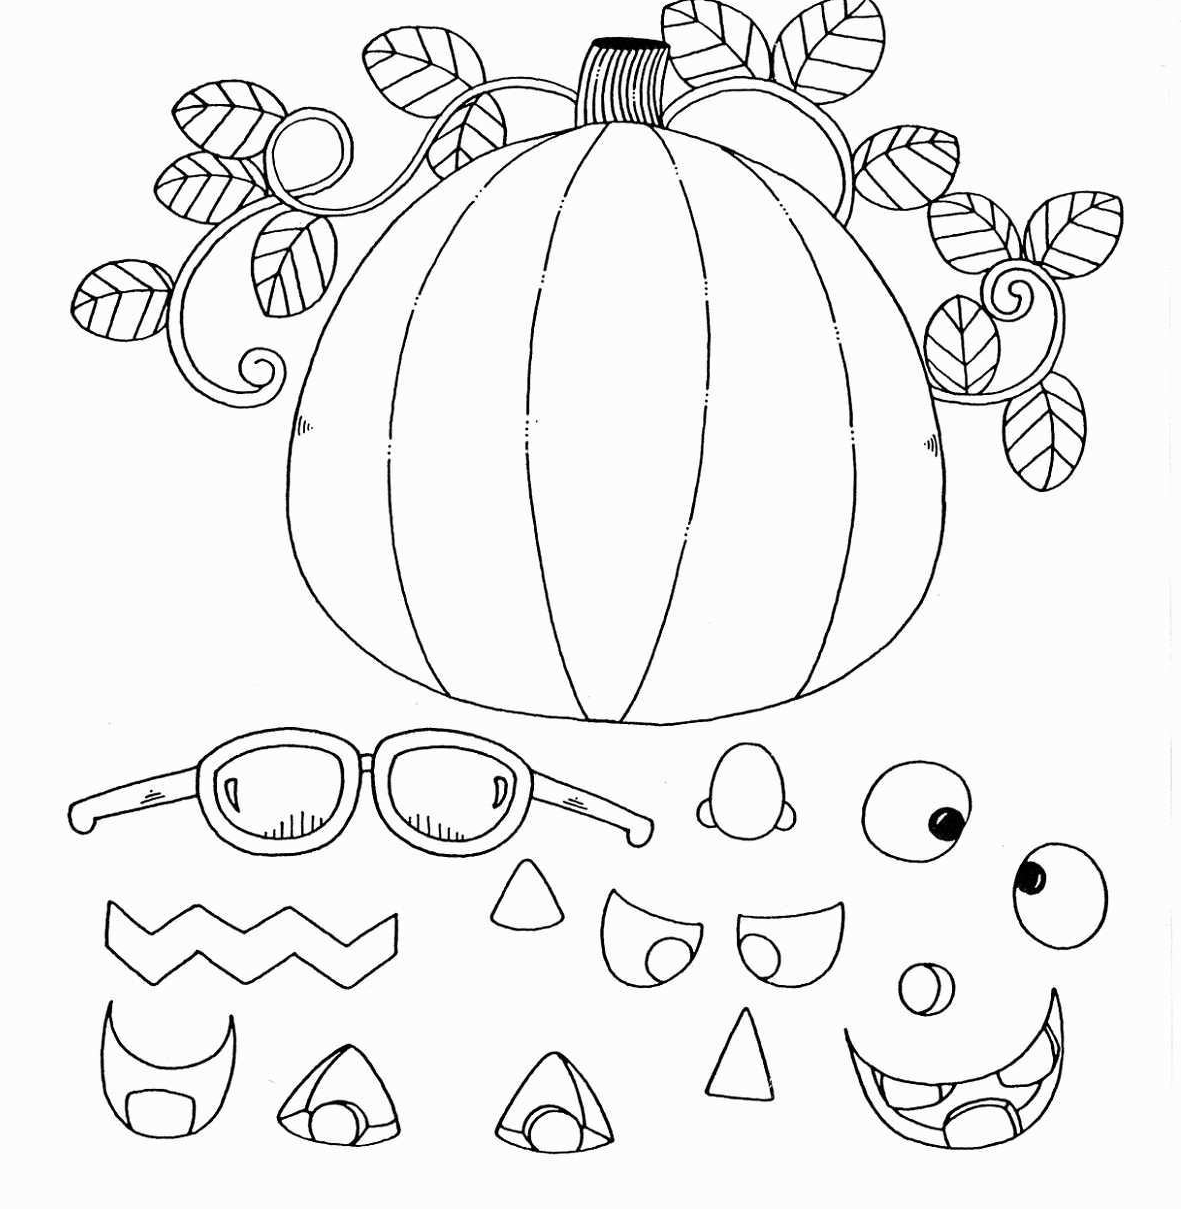 coloring pages of a pumpkin scary pumpkin halloween coloring pages printable a of coloring pages pumpkin